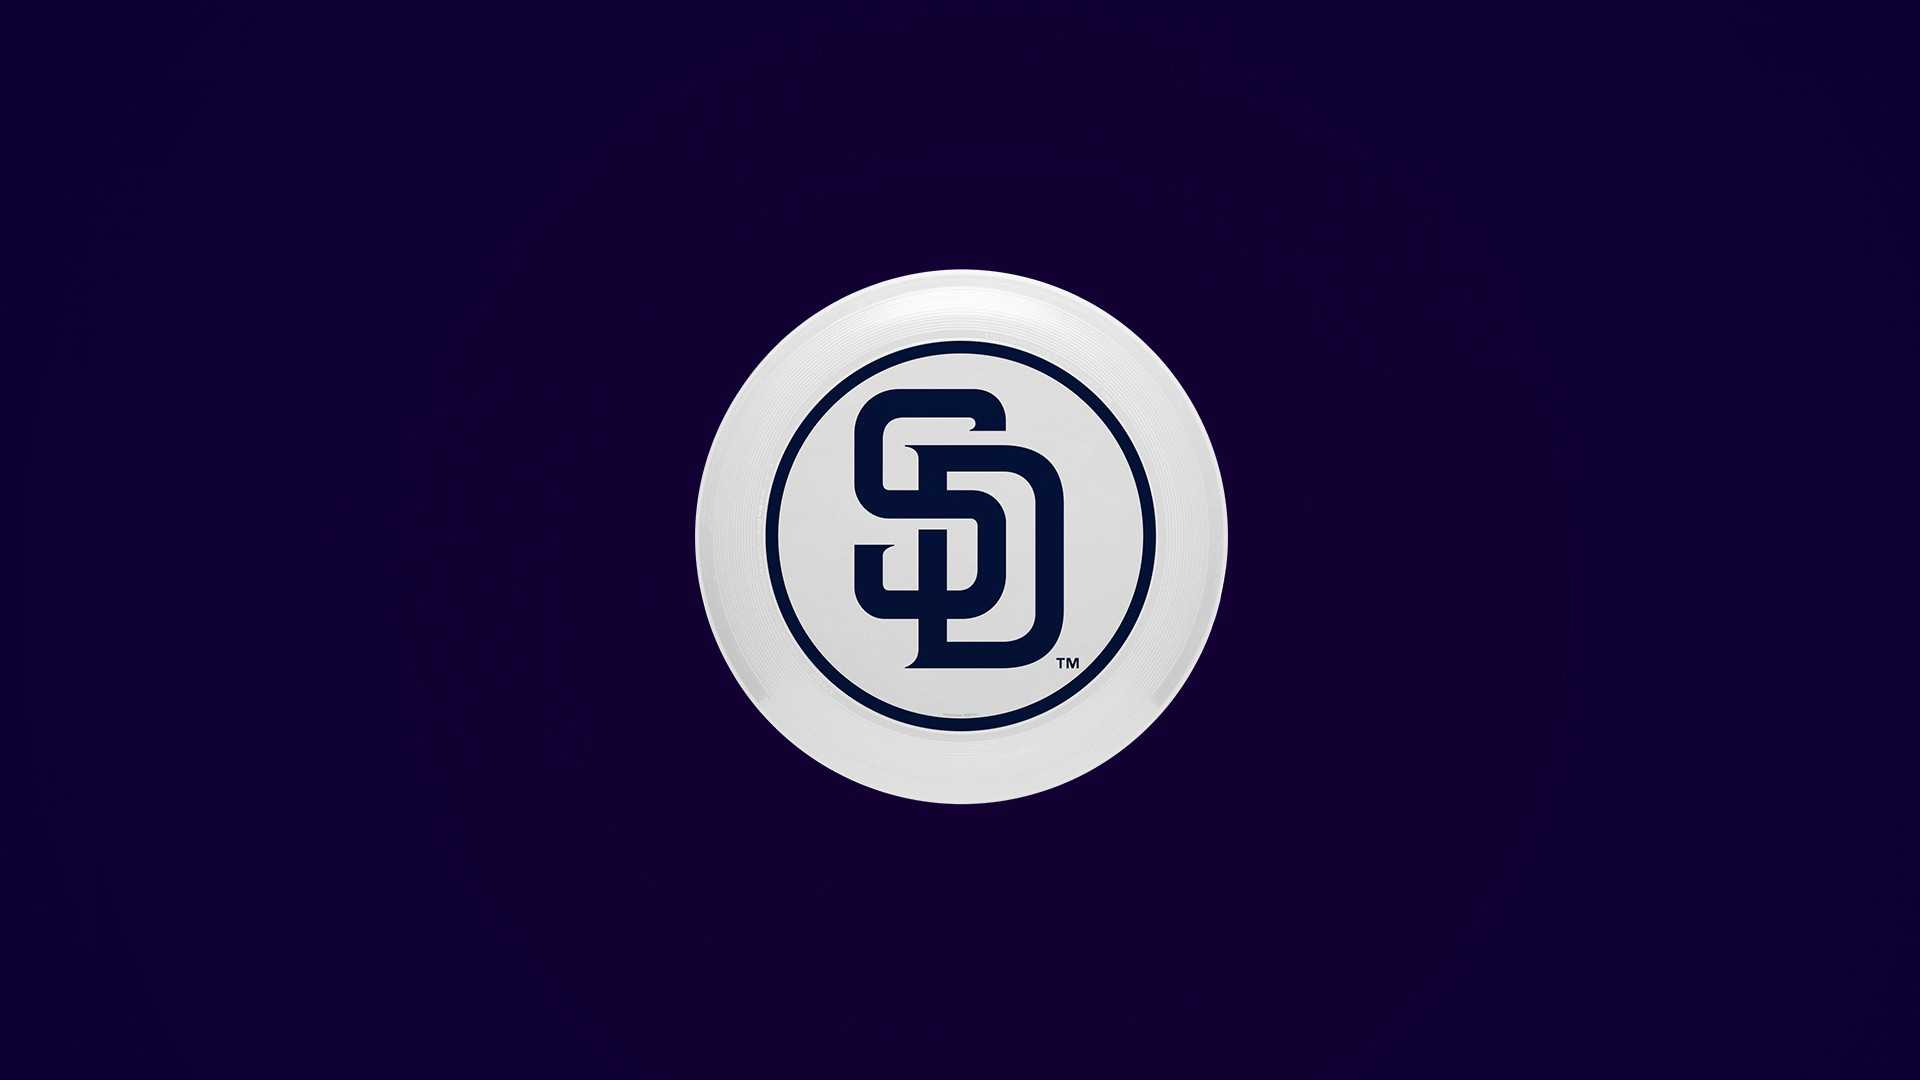 San Diego Padres Wallpaper HD 1